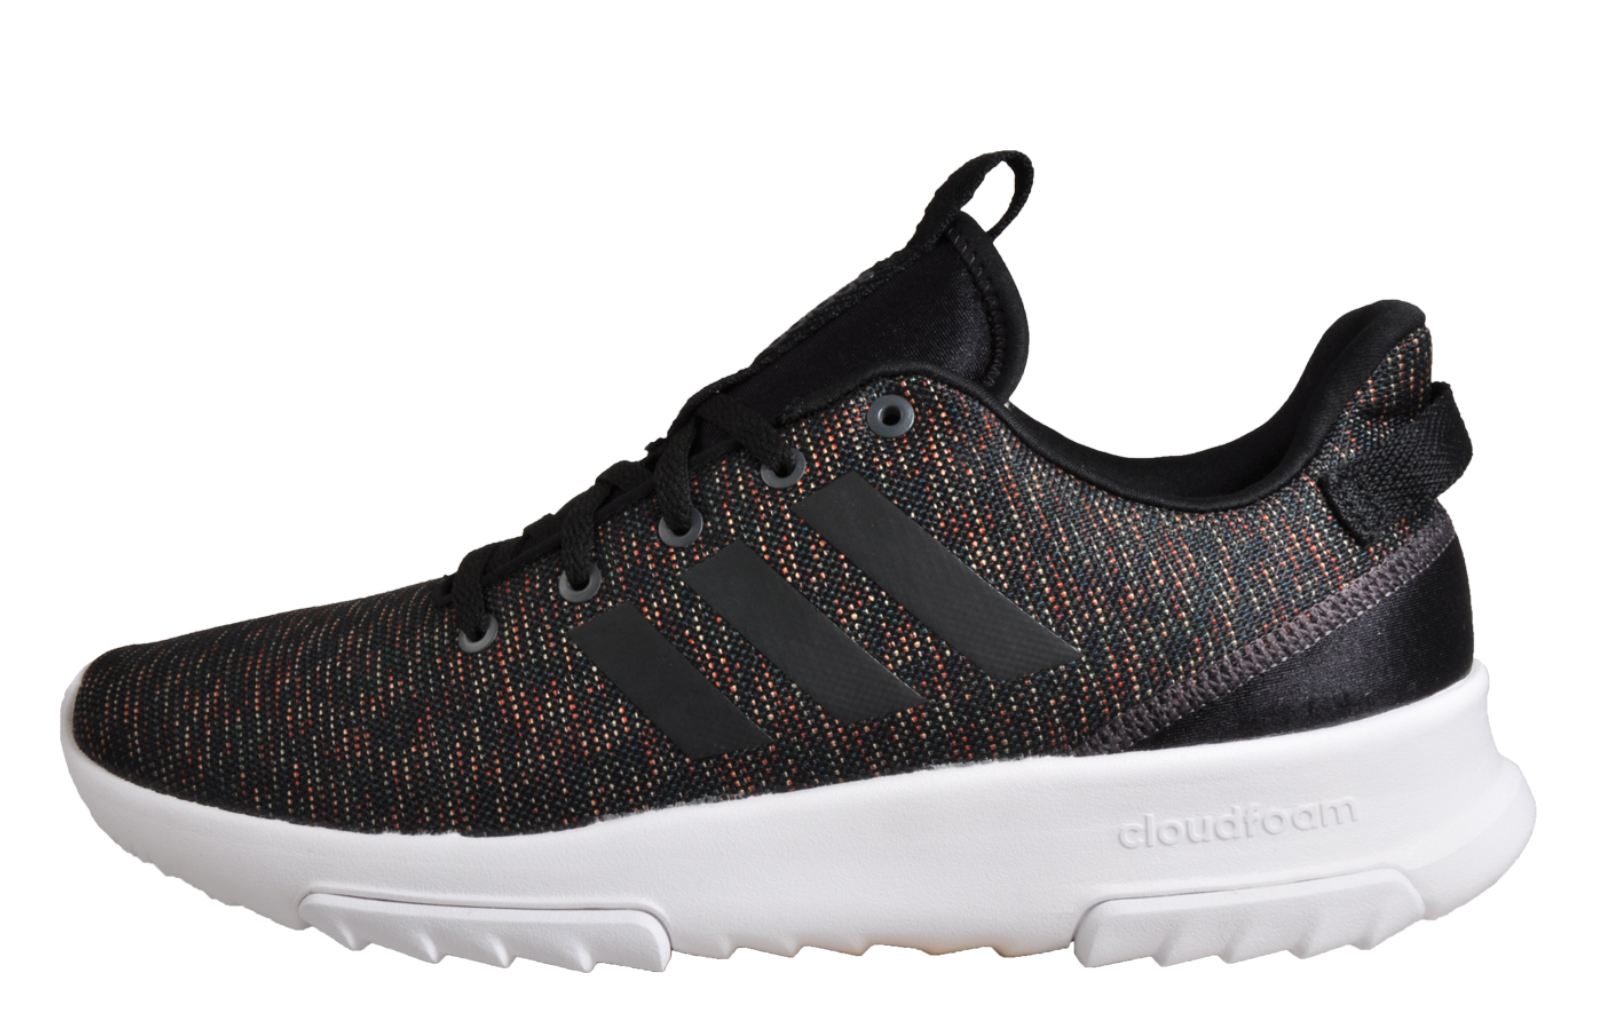 pretty nice 0720e 49d31 Adidas Neo Cloudfoam Racer TR Mens Running Gym Casual Trainers Black